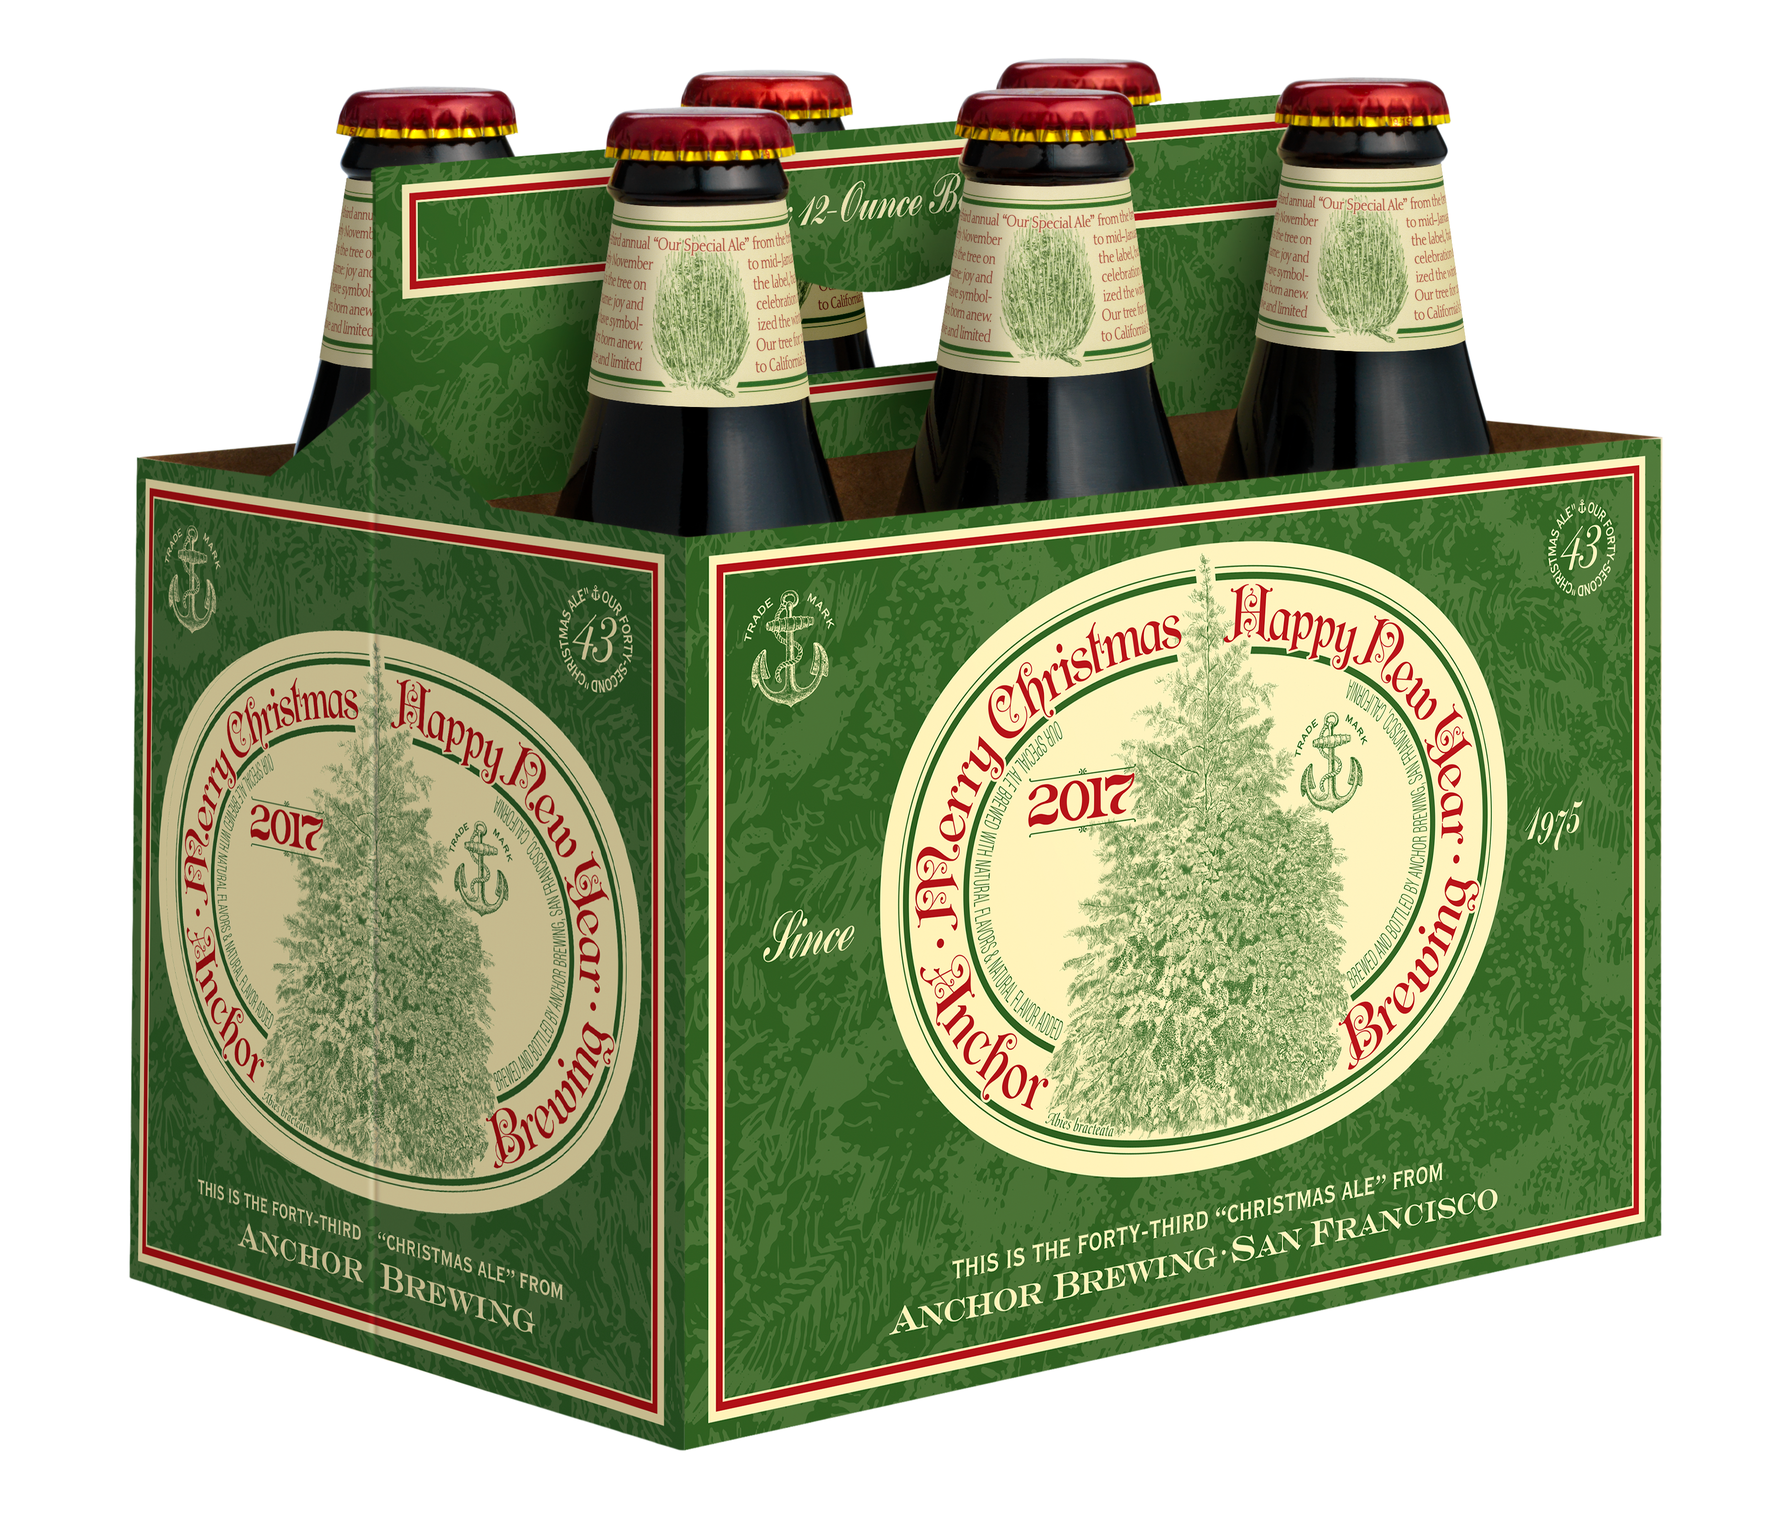 along with an evolving recipe christmas ale portrays a new label every year since ancient times trees have symbolized the winter solstice when the earth - Christmas Ale Recipe